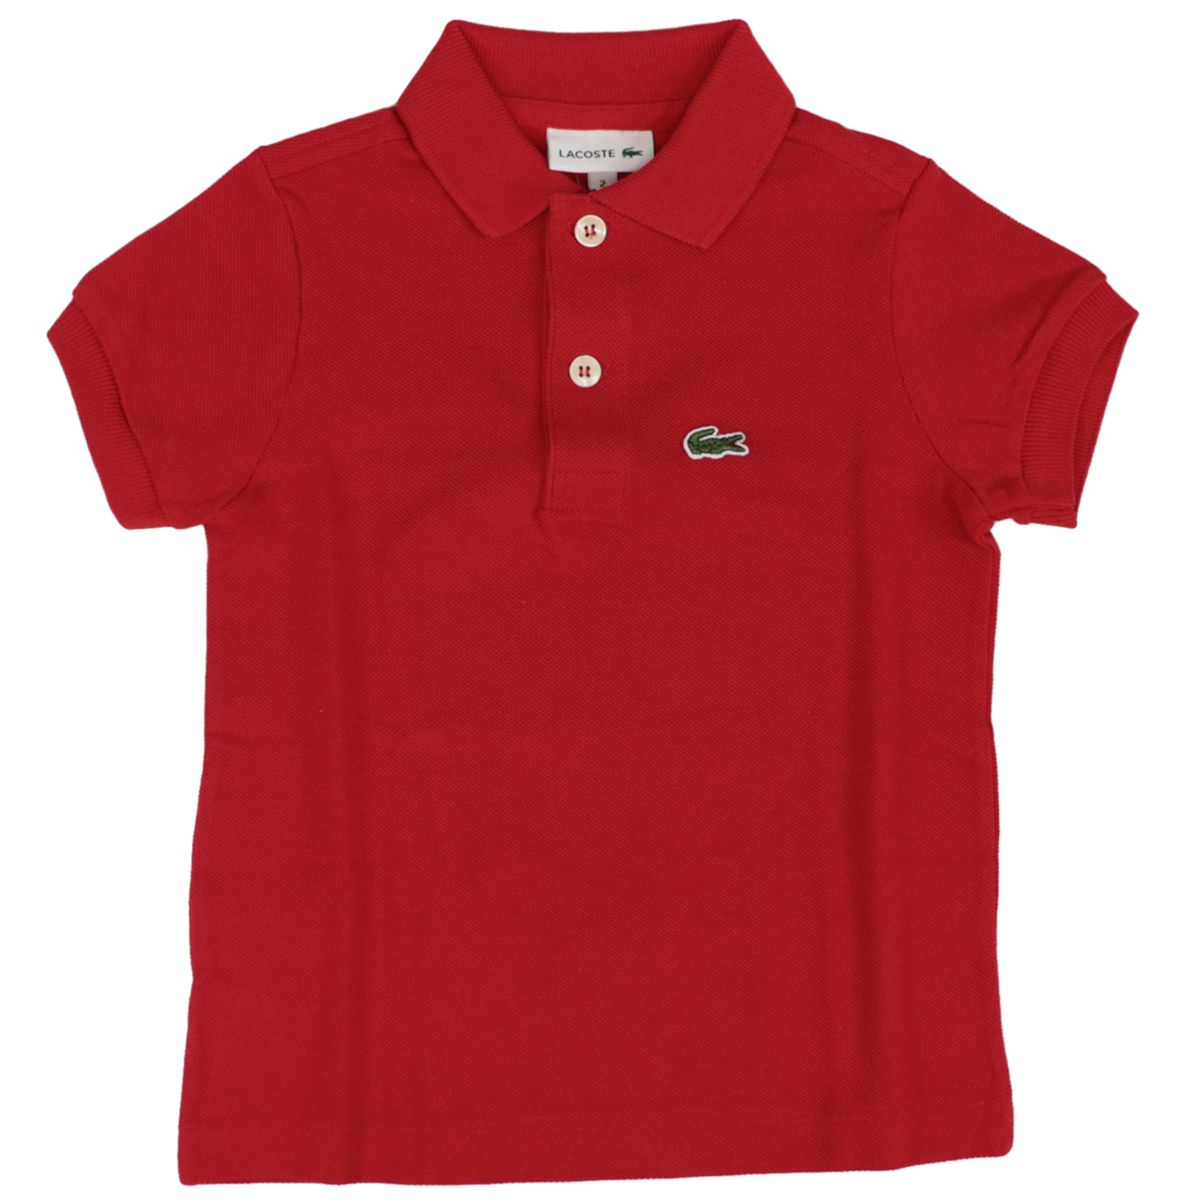 Cotton piqué polo shirt with 2 buttons with logo Red Lacoste